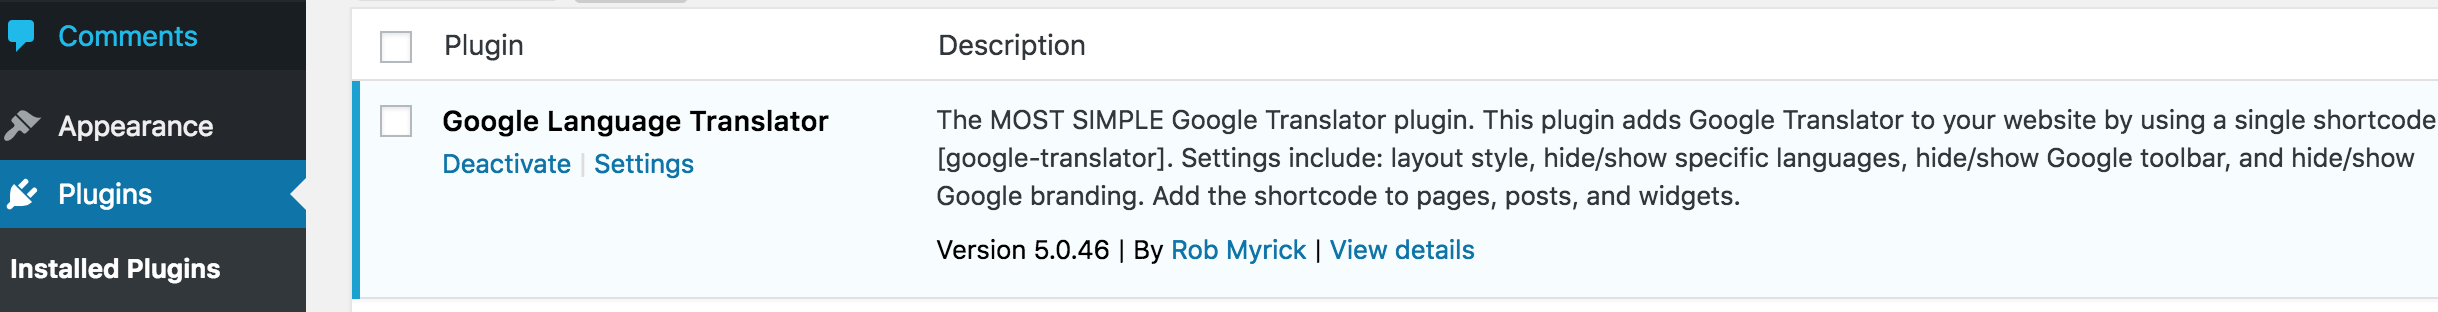 installed-google-language-translator